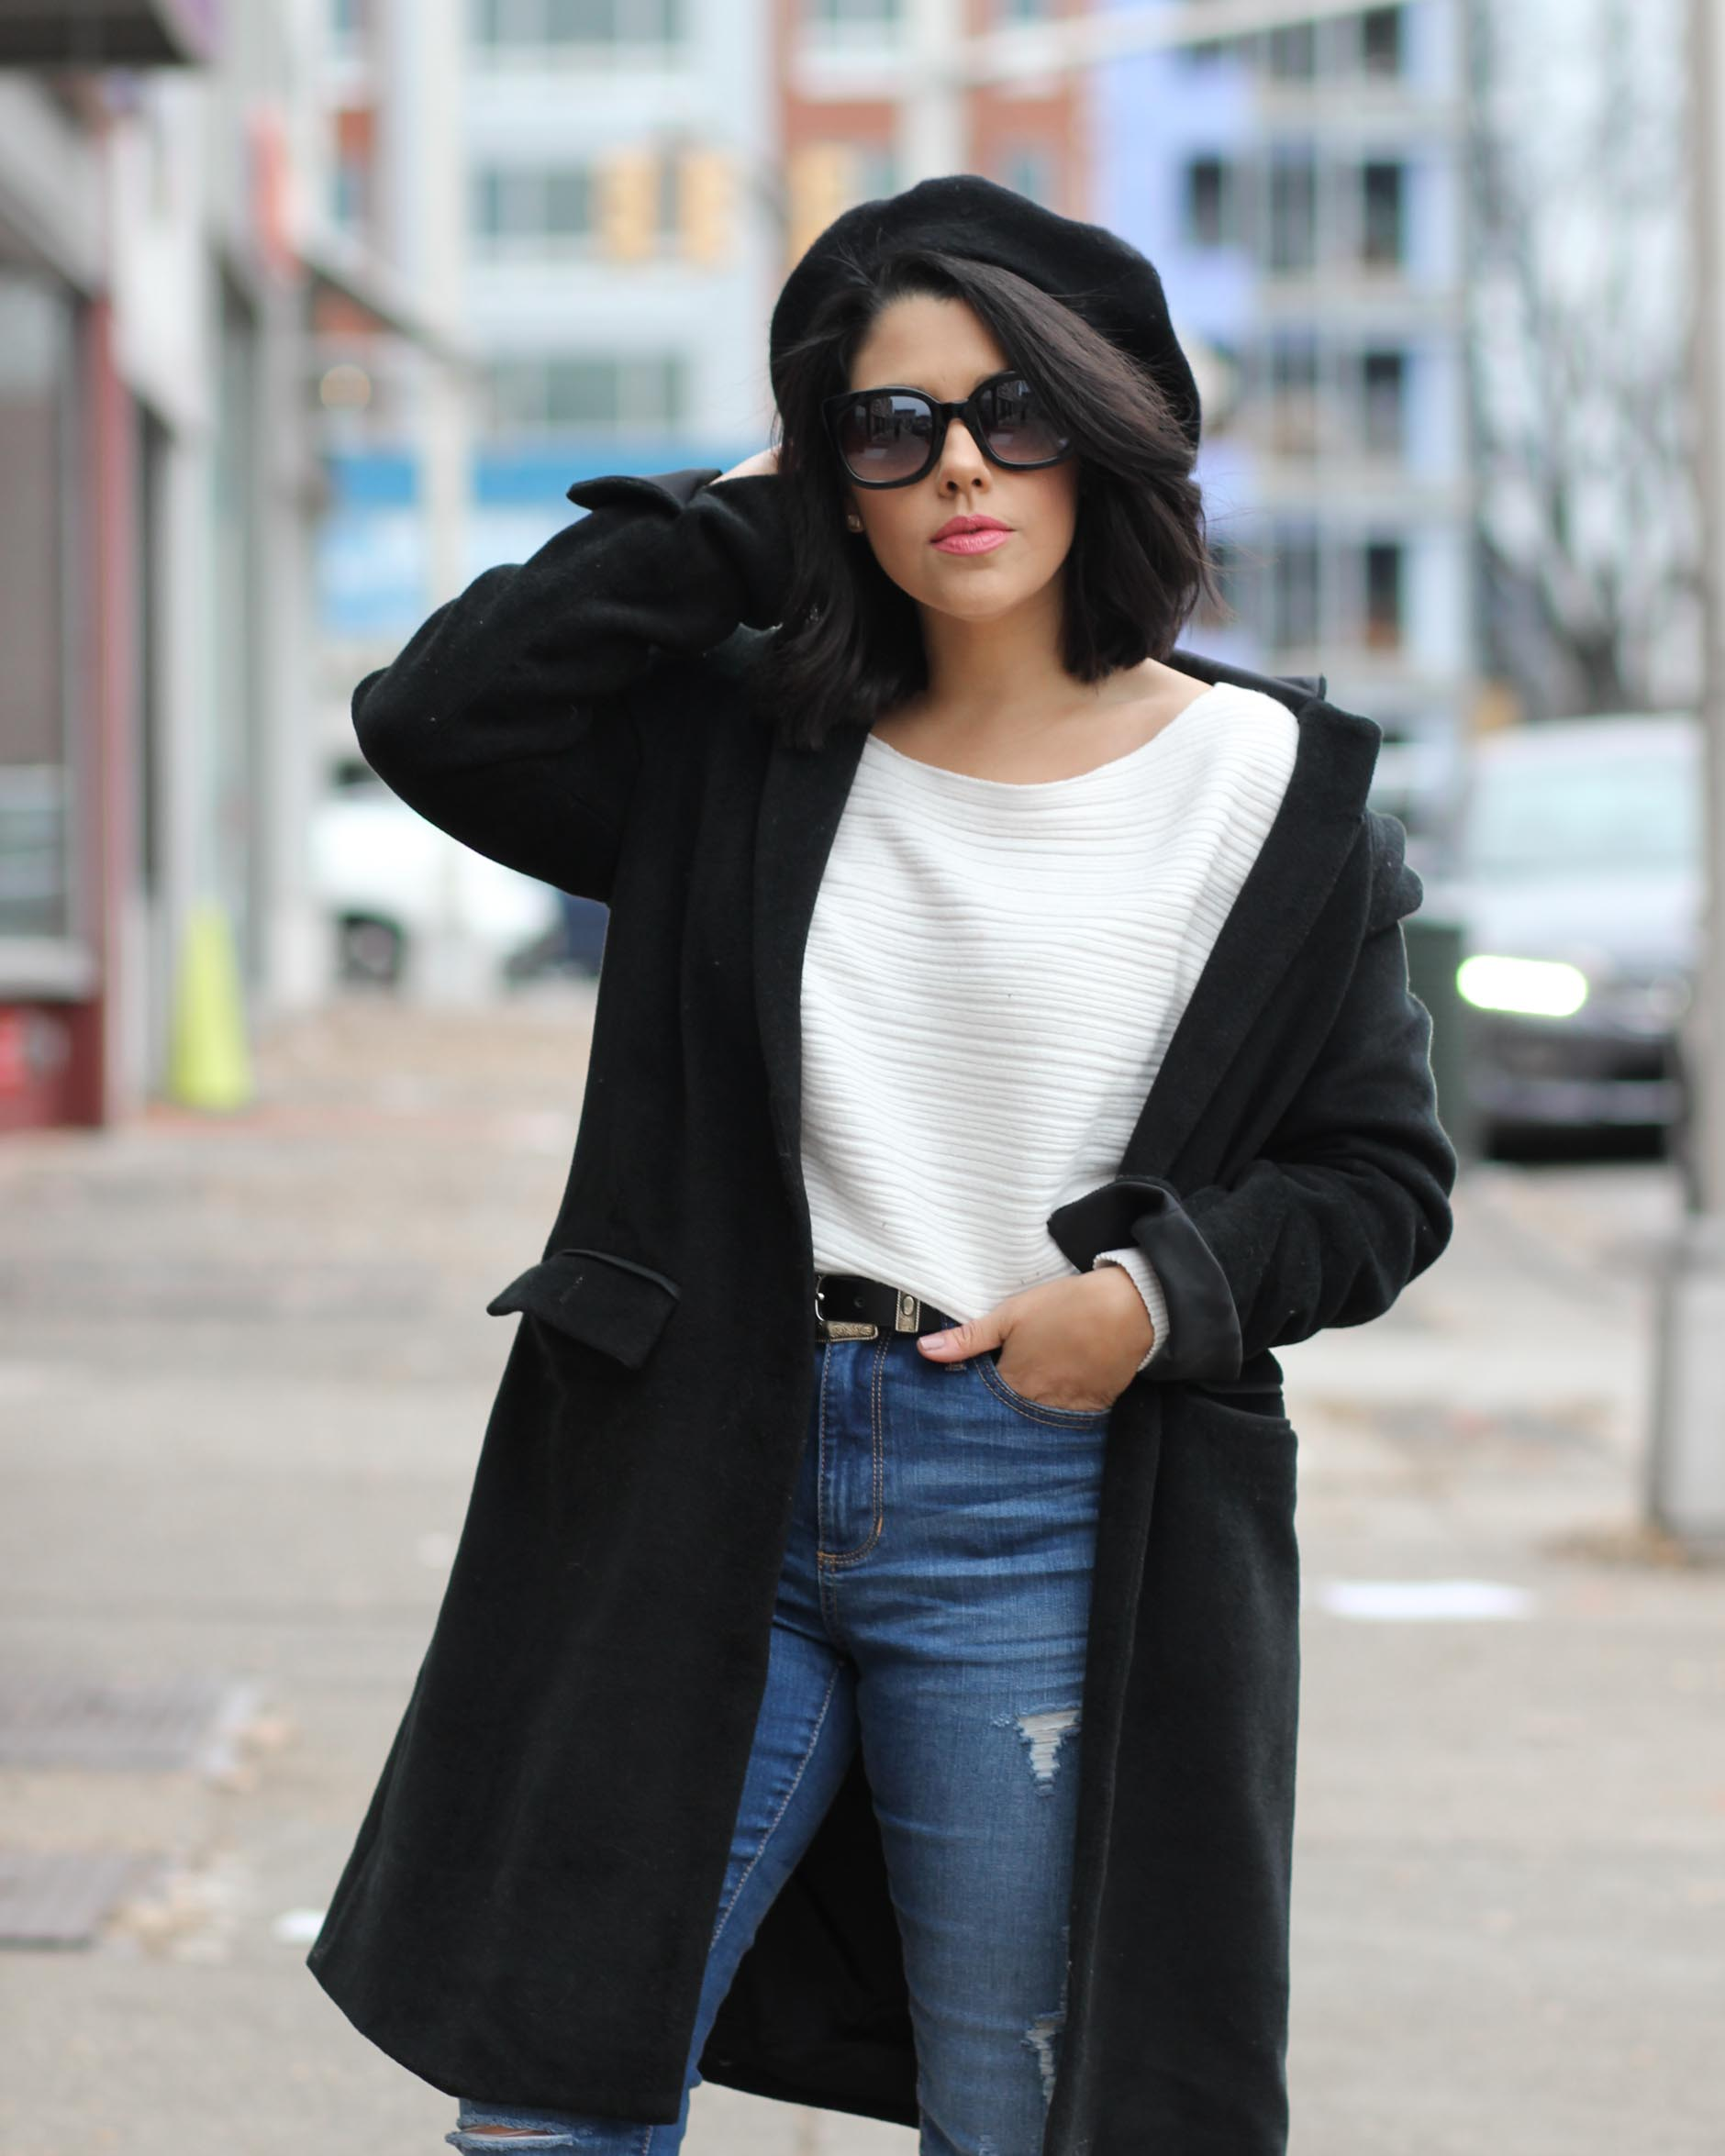 lifestyle blogger naty michele with short hair wearing sweater and black coat